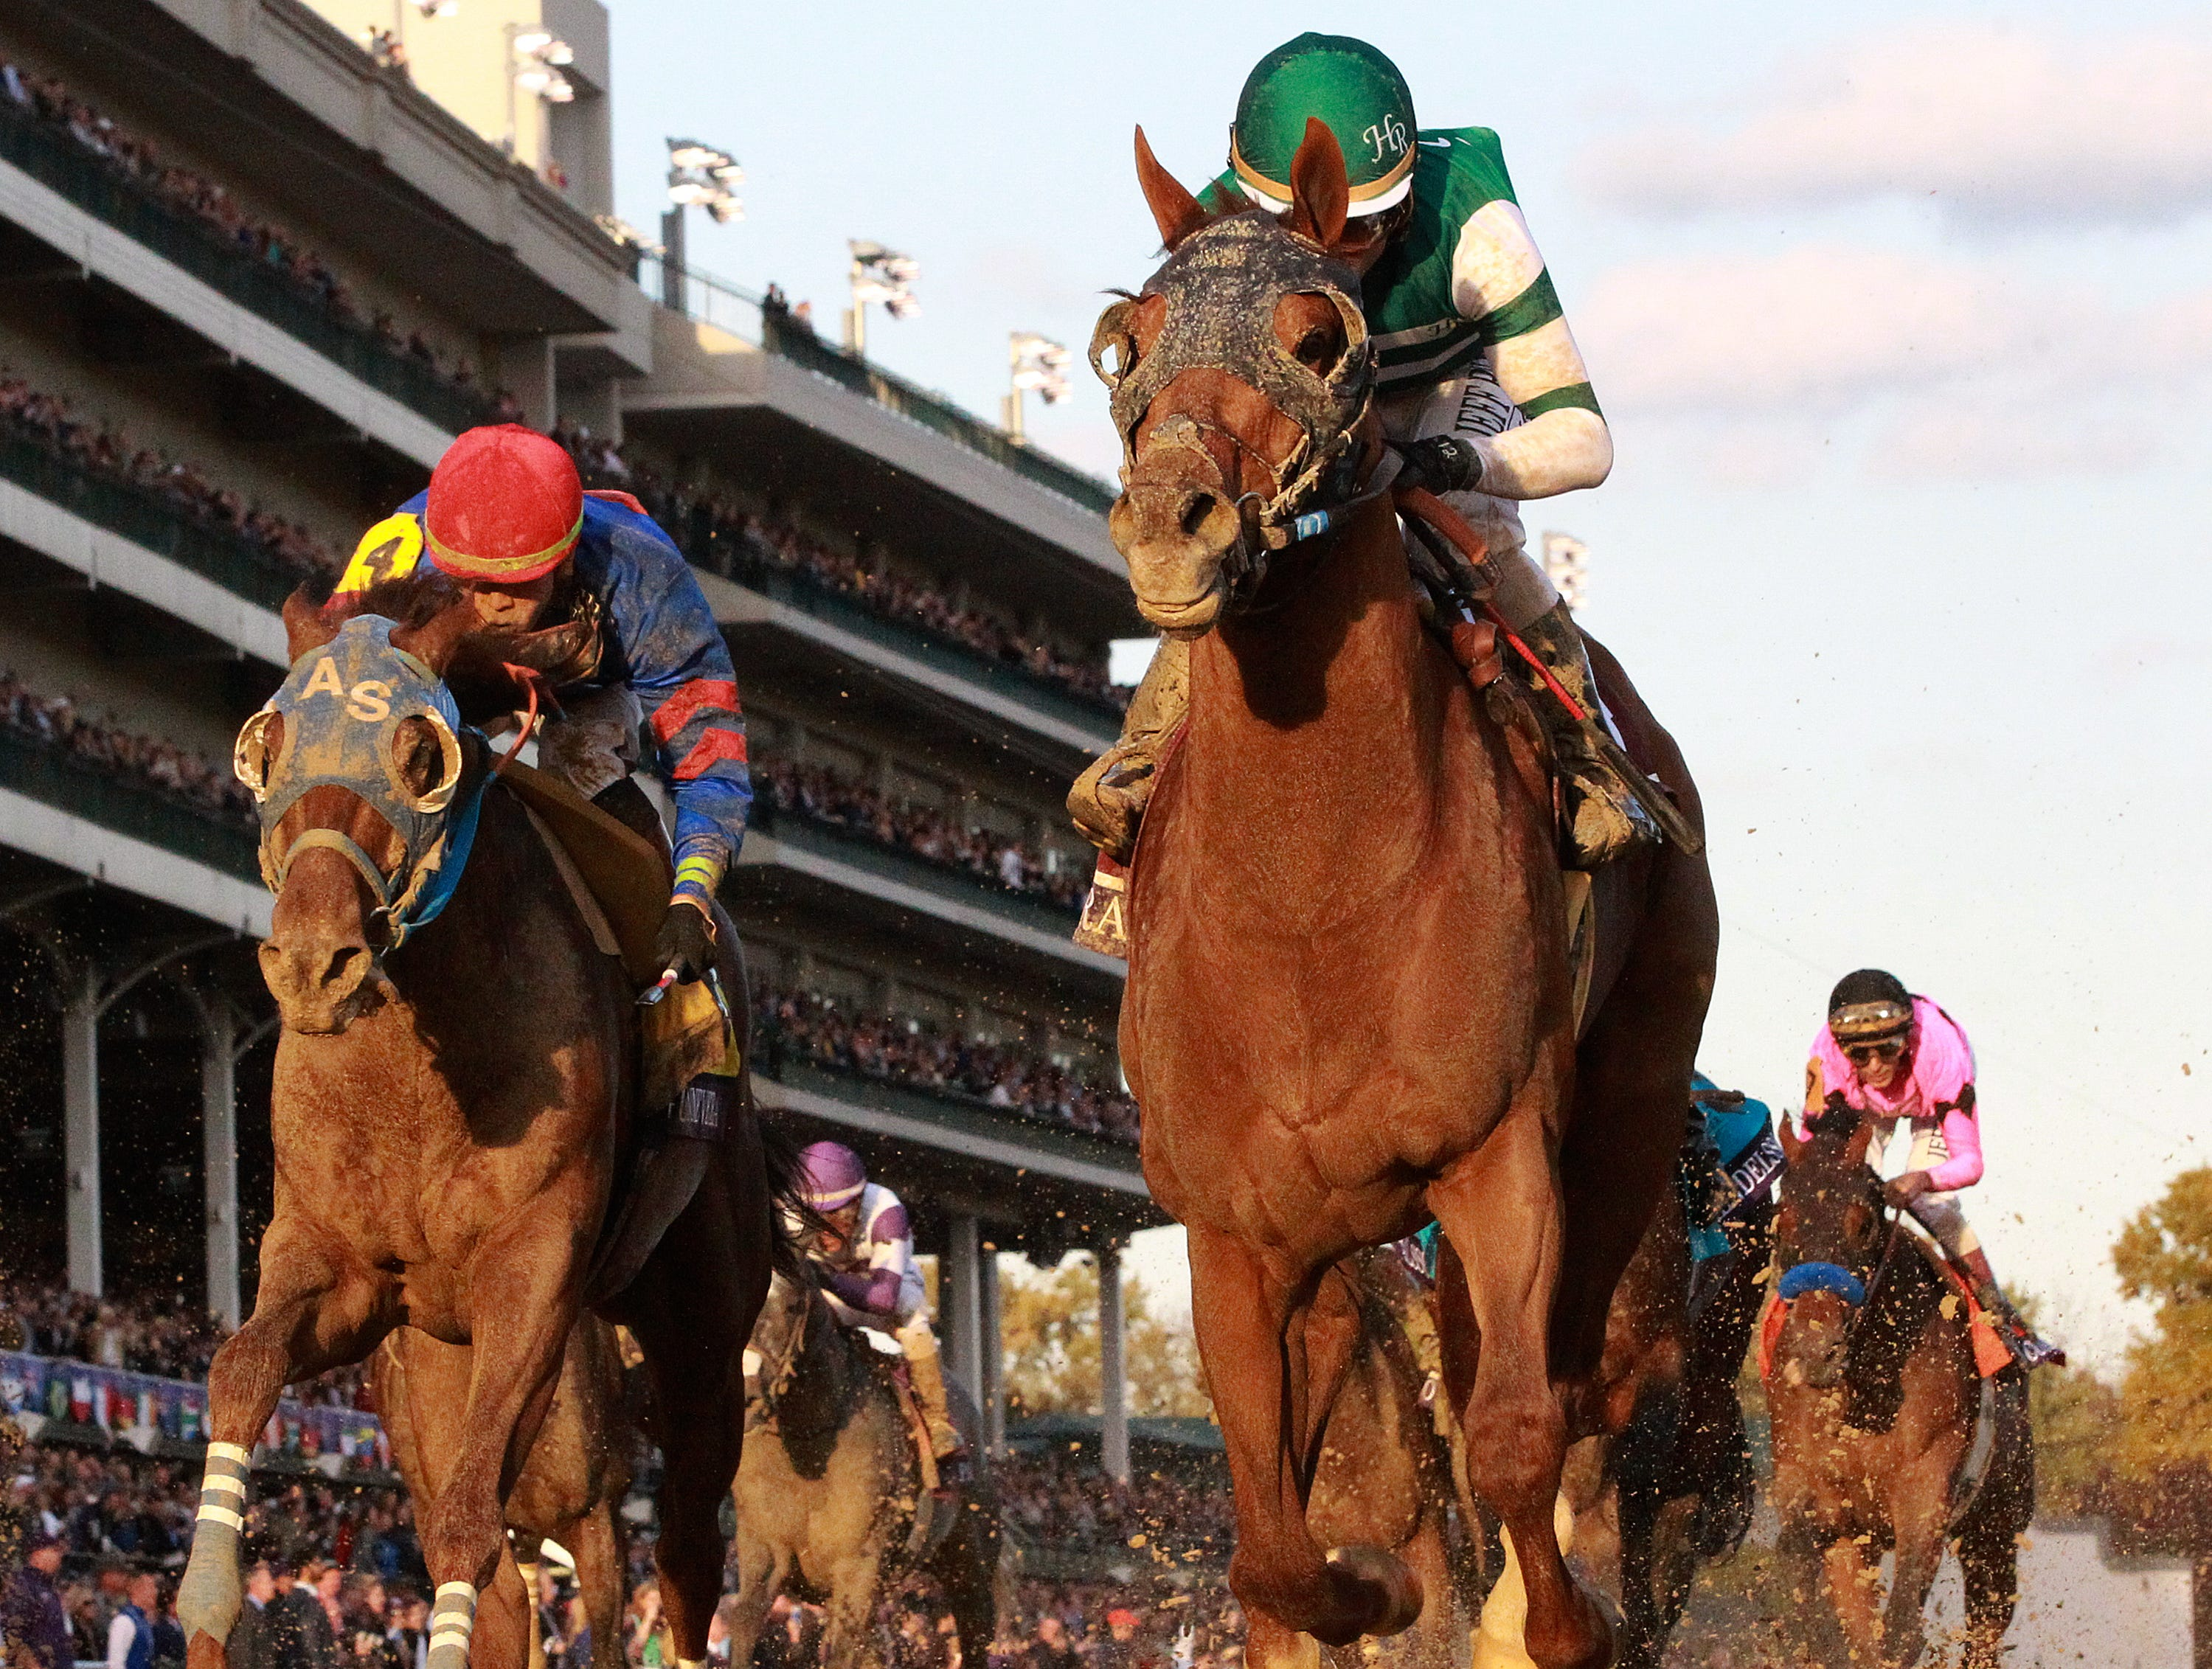 Accelerate, with Joel Rosario up, wins the Breeders' Cup Classic at Churchill Downs on Saturday.